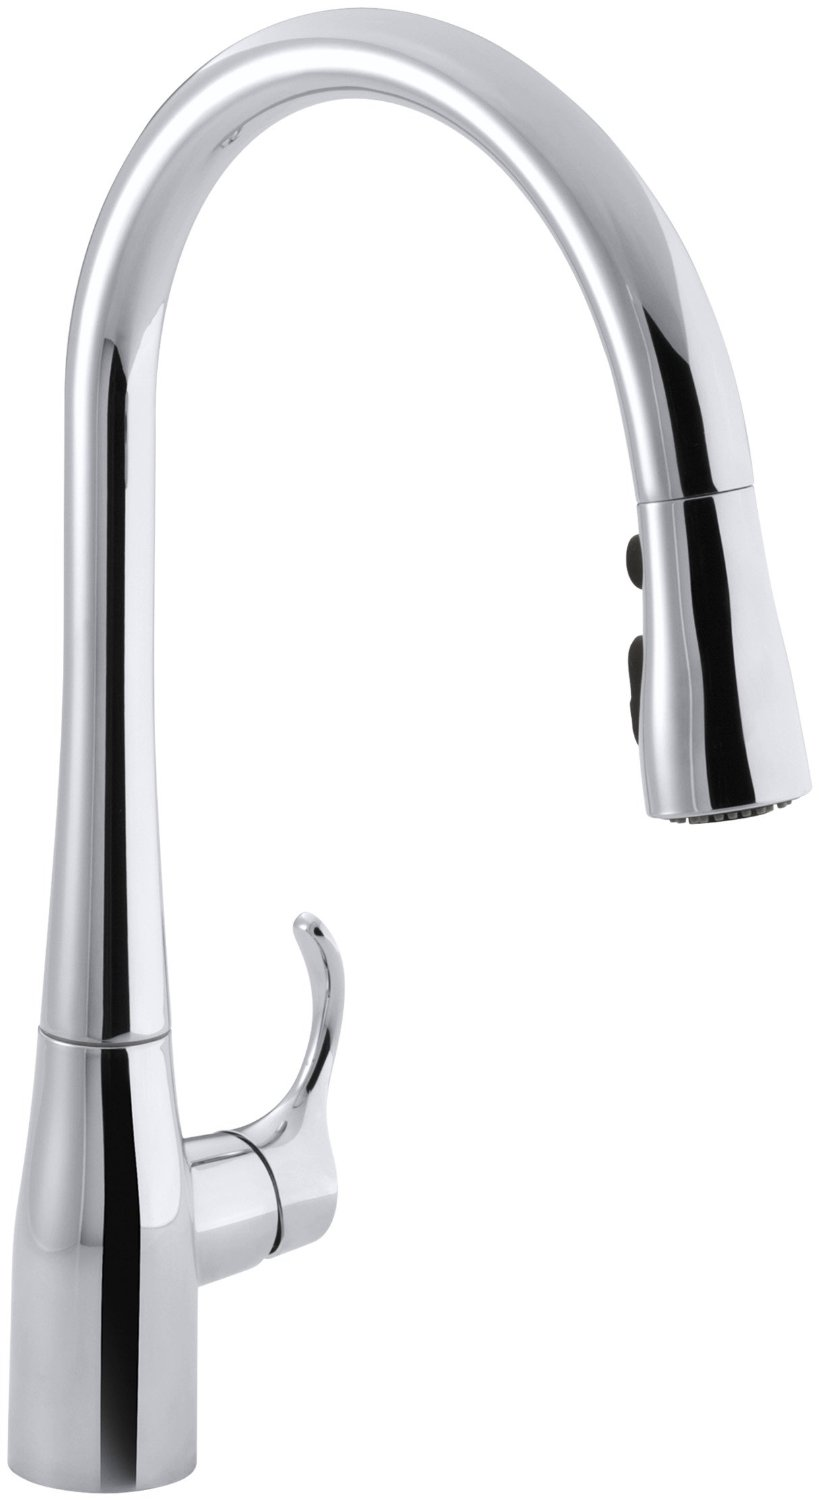 delta pull down kitchen faucet how to install hidden hinges on cabinets what's the best faucet?